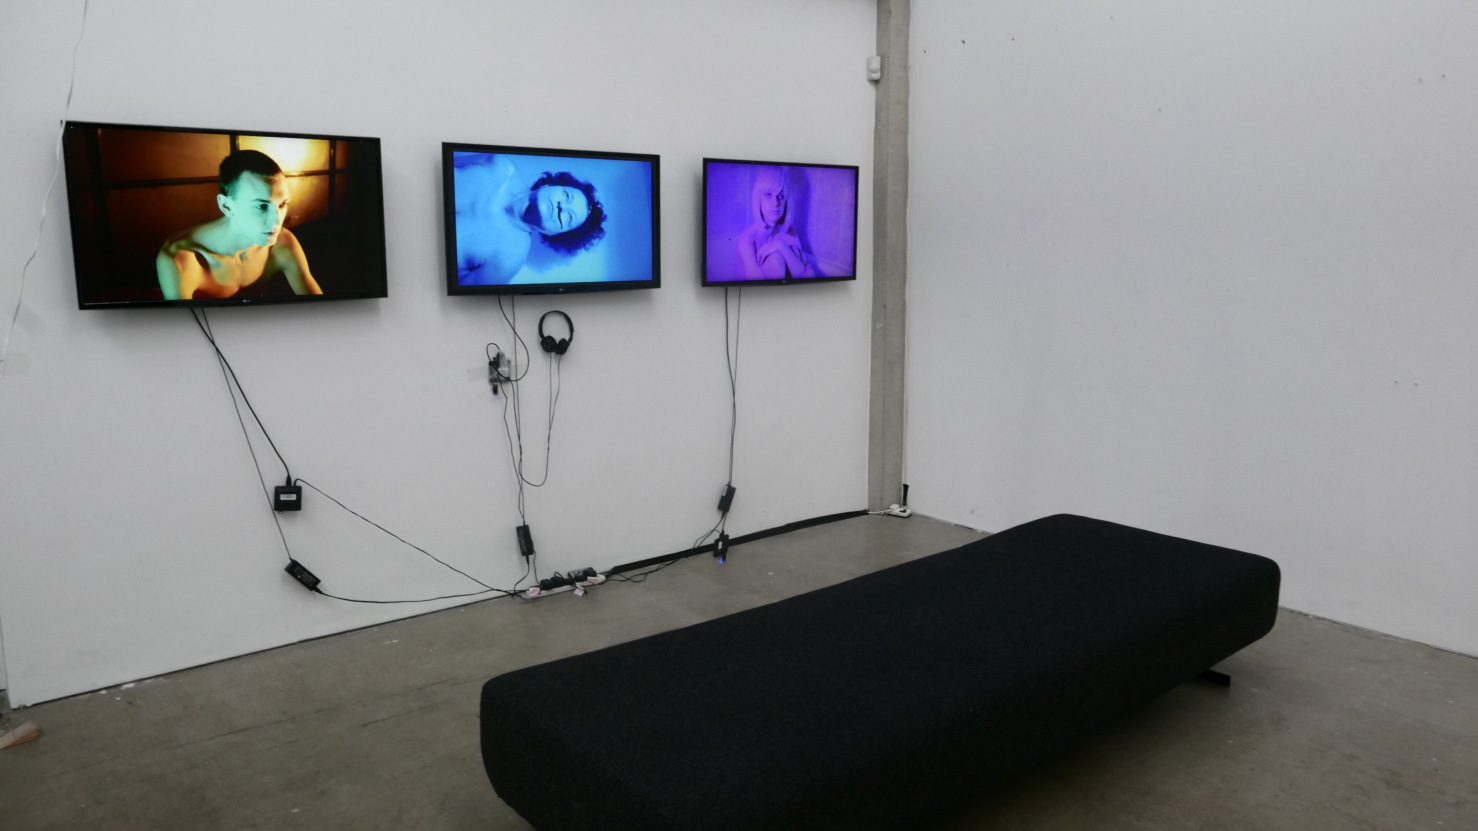 'The Eternals'  3 Screens with Headphone Sounds - Royal College of Art - Work In Progress 2018